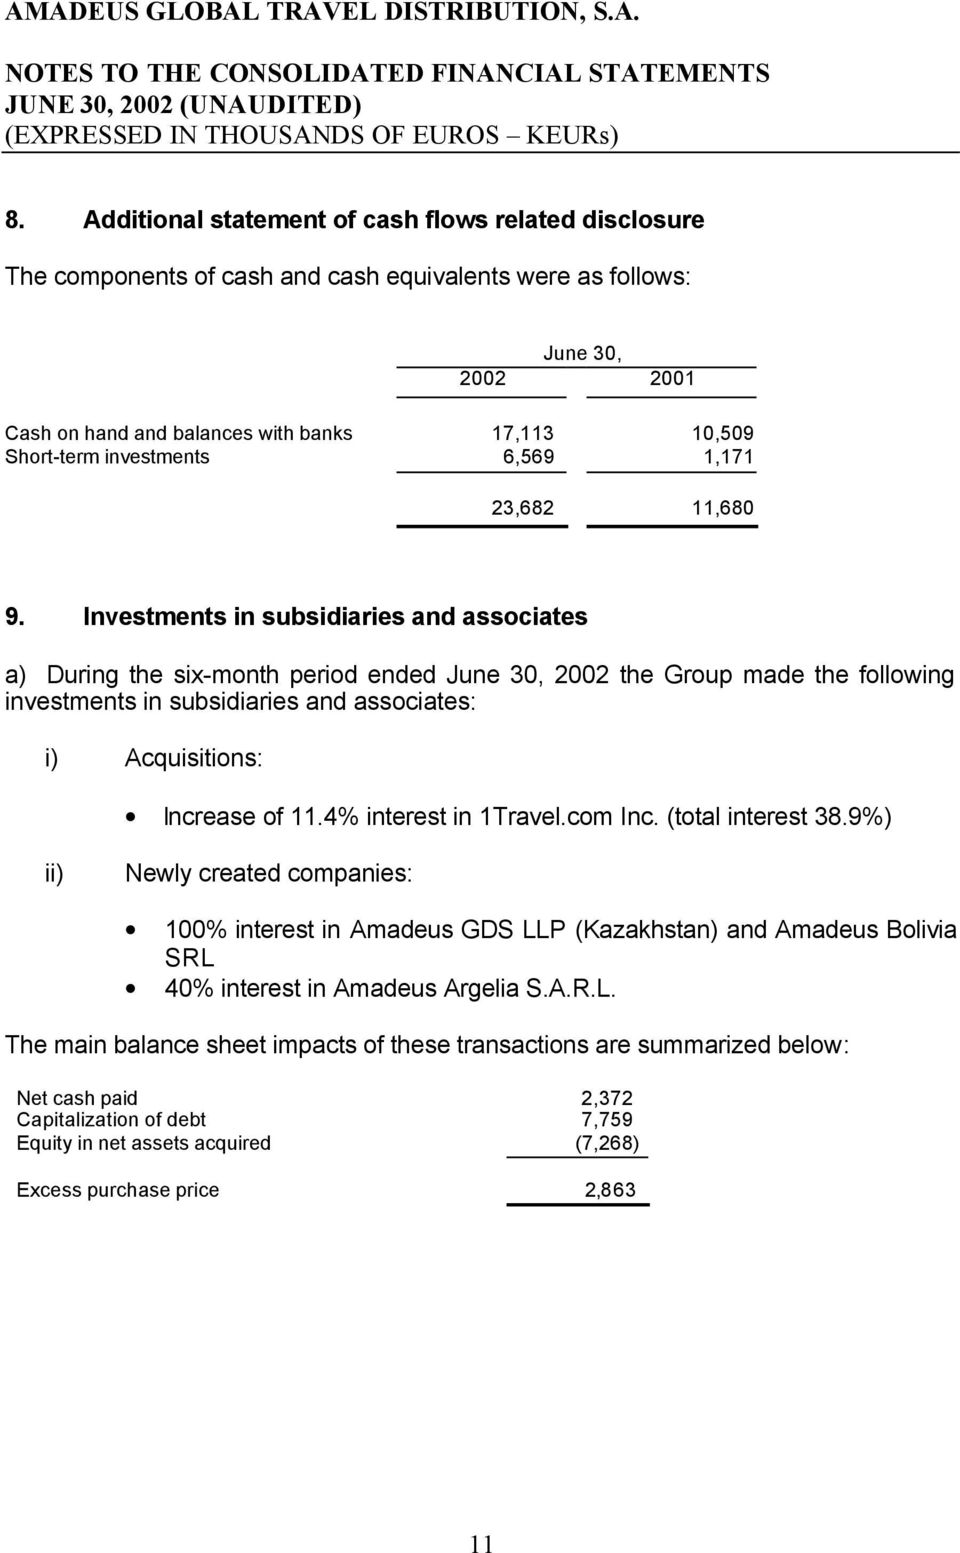 Investments in subsidiaries and associates a) During the six-month period ended June 30, 2002 the Group made the following investments in subsidiaries and associates: i) Acquisitions: Increase of 11.